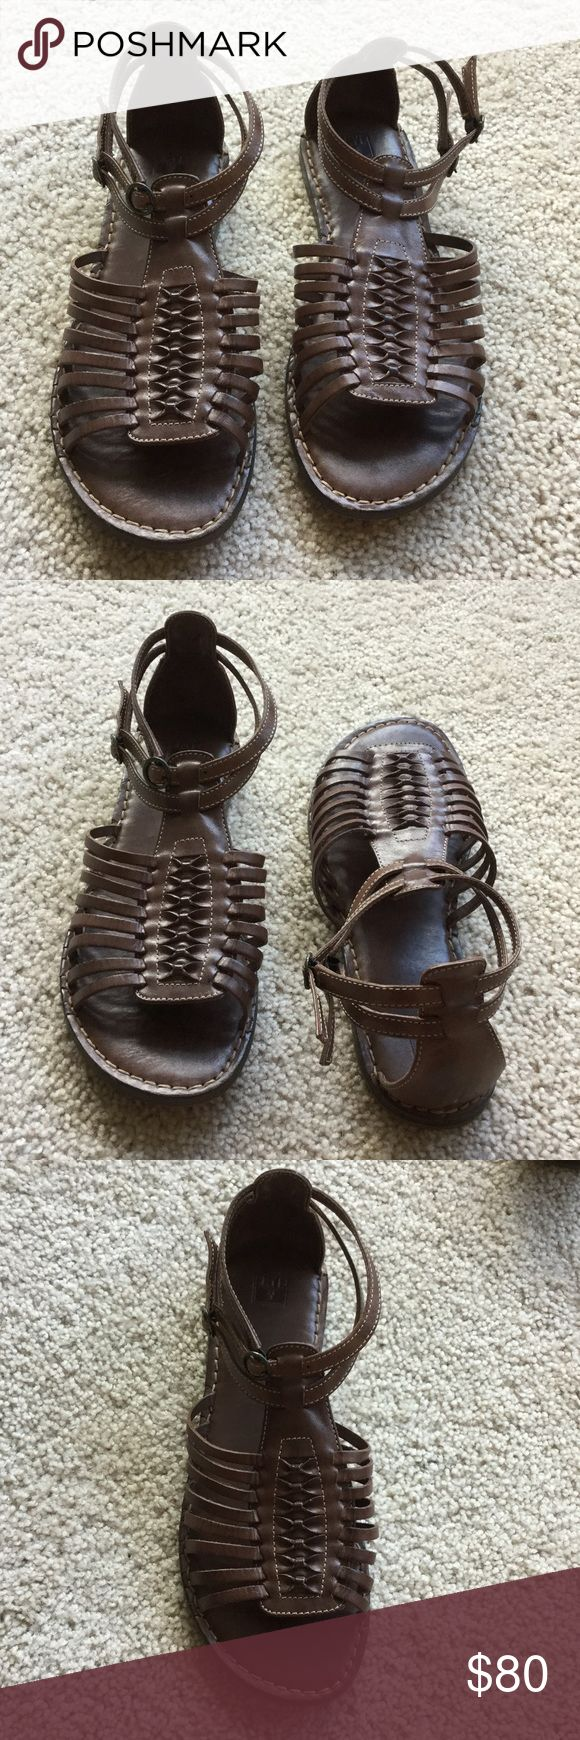 Frye Sandals Size 10 Hardly ever worn Fyre sandals size 10 - color brown.  These are a steal! Frye Shoes Sandals